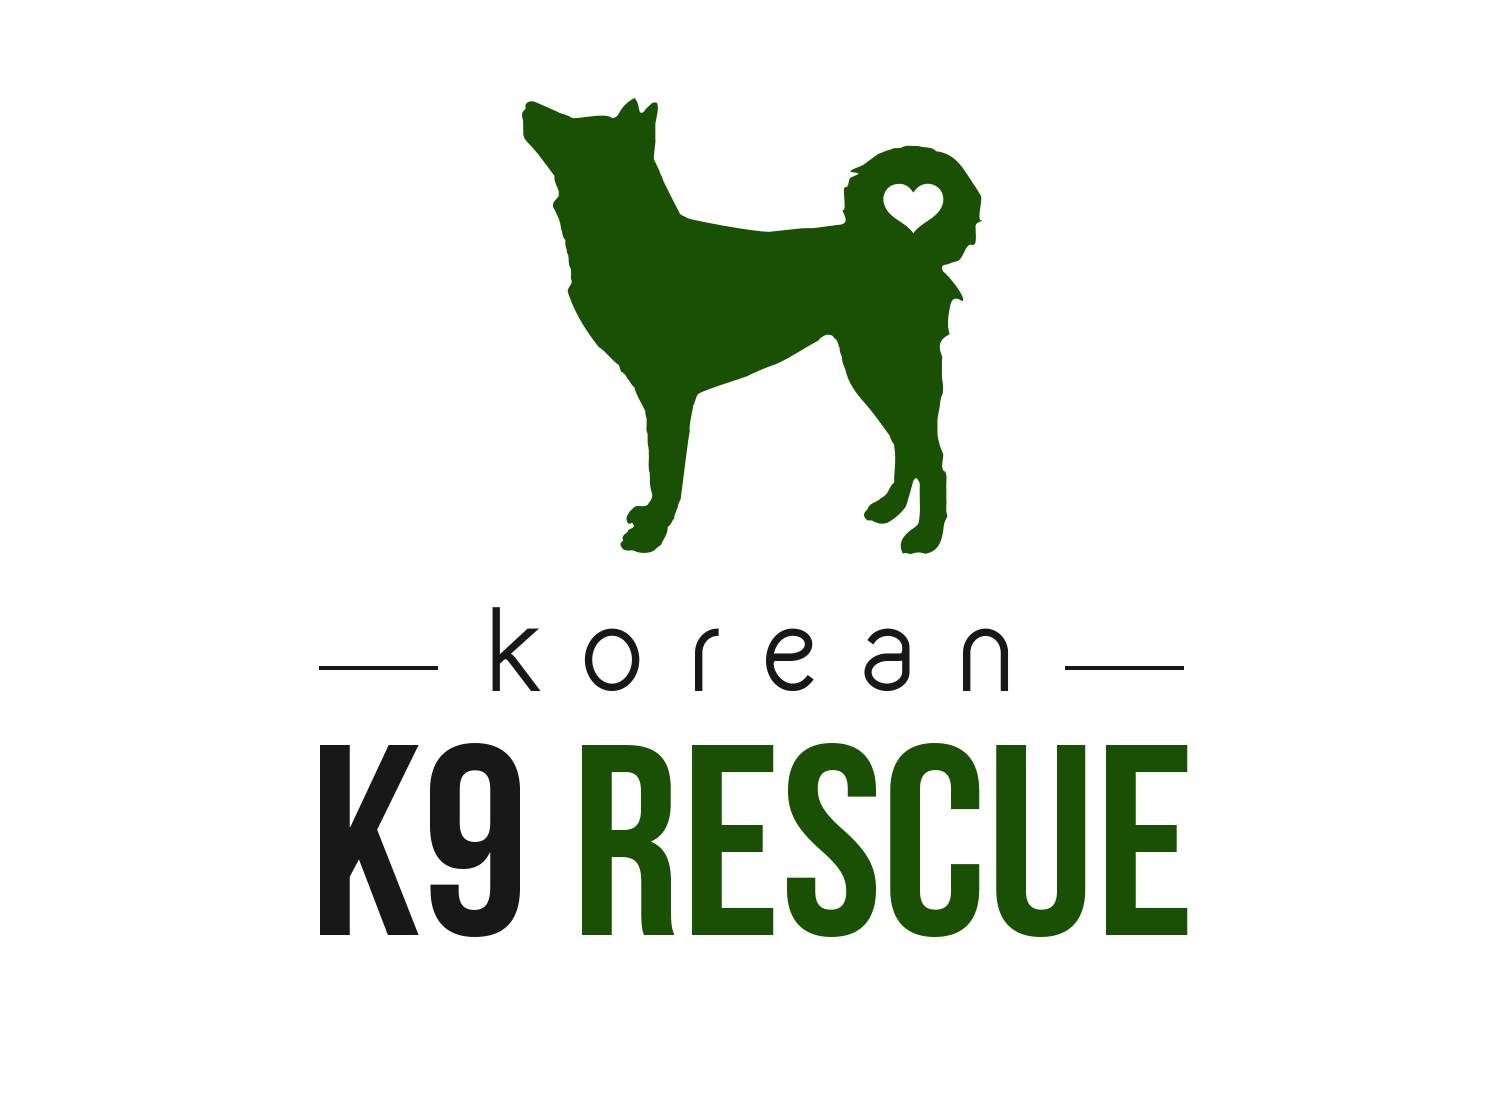 Korean K9 Rescue - Partner Dates: October 24 - 26Korean K9 Rescue is a registered 501(c)(3) non-profit that rescues dogs from high kill shelters, dog meat farms, and puppy mills in South Korea. Due to the stigma associated with mixed breed and